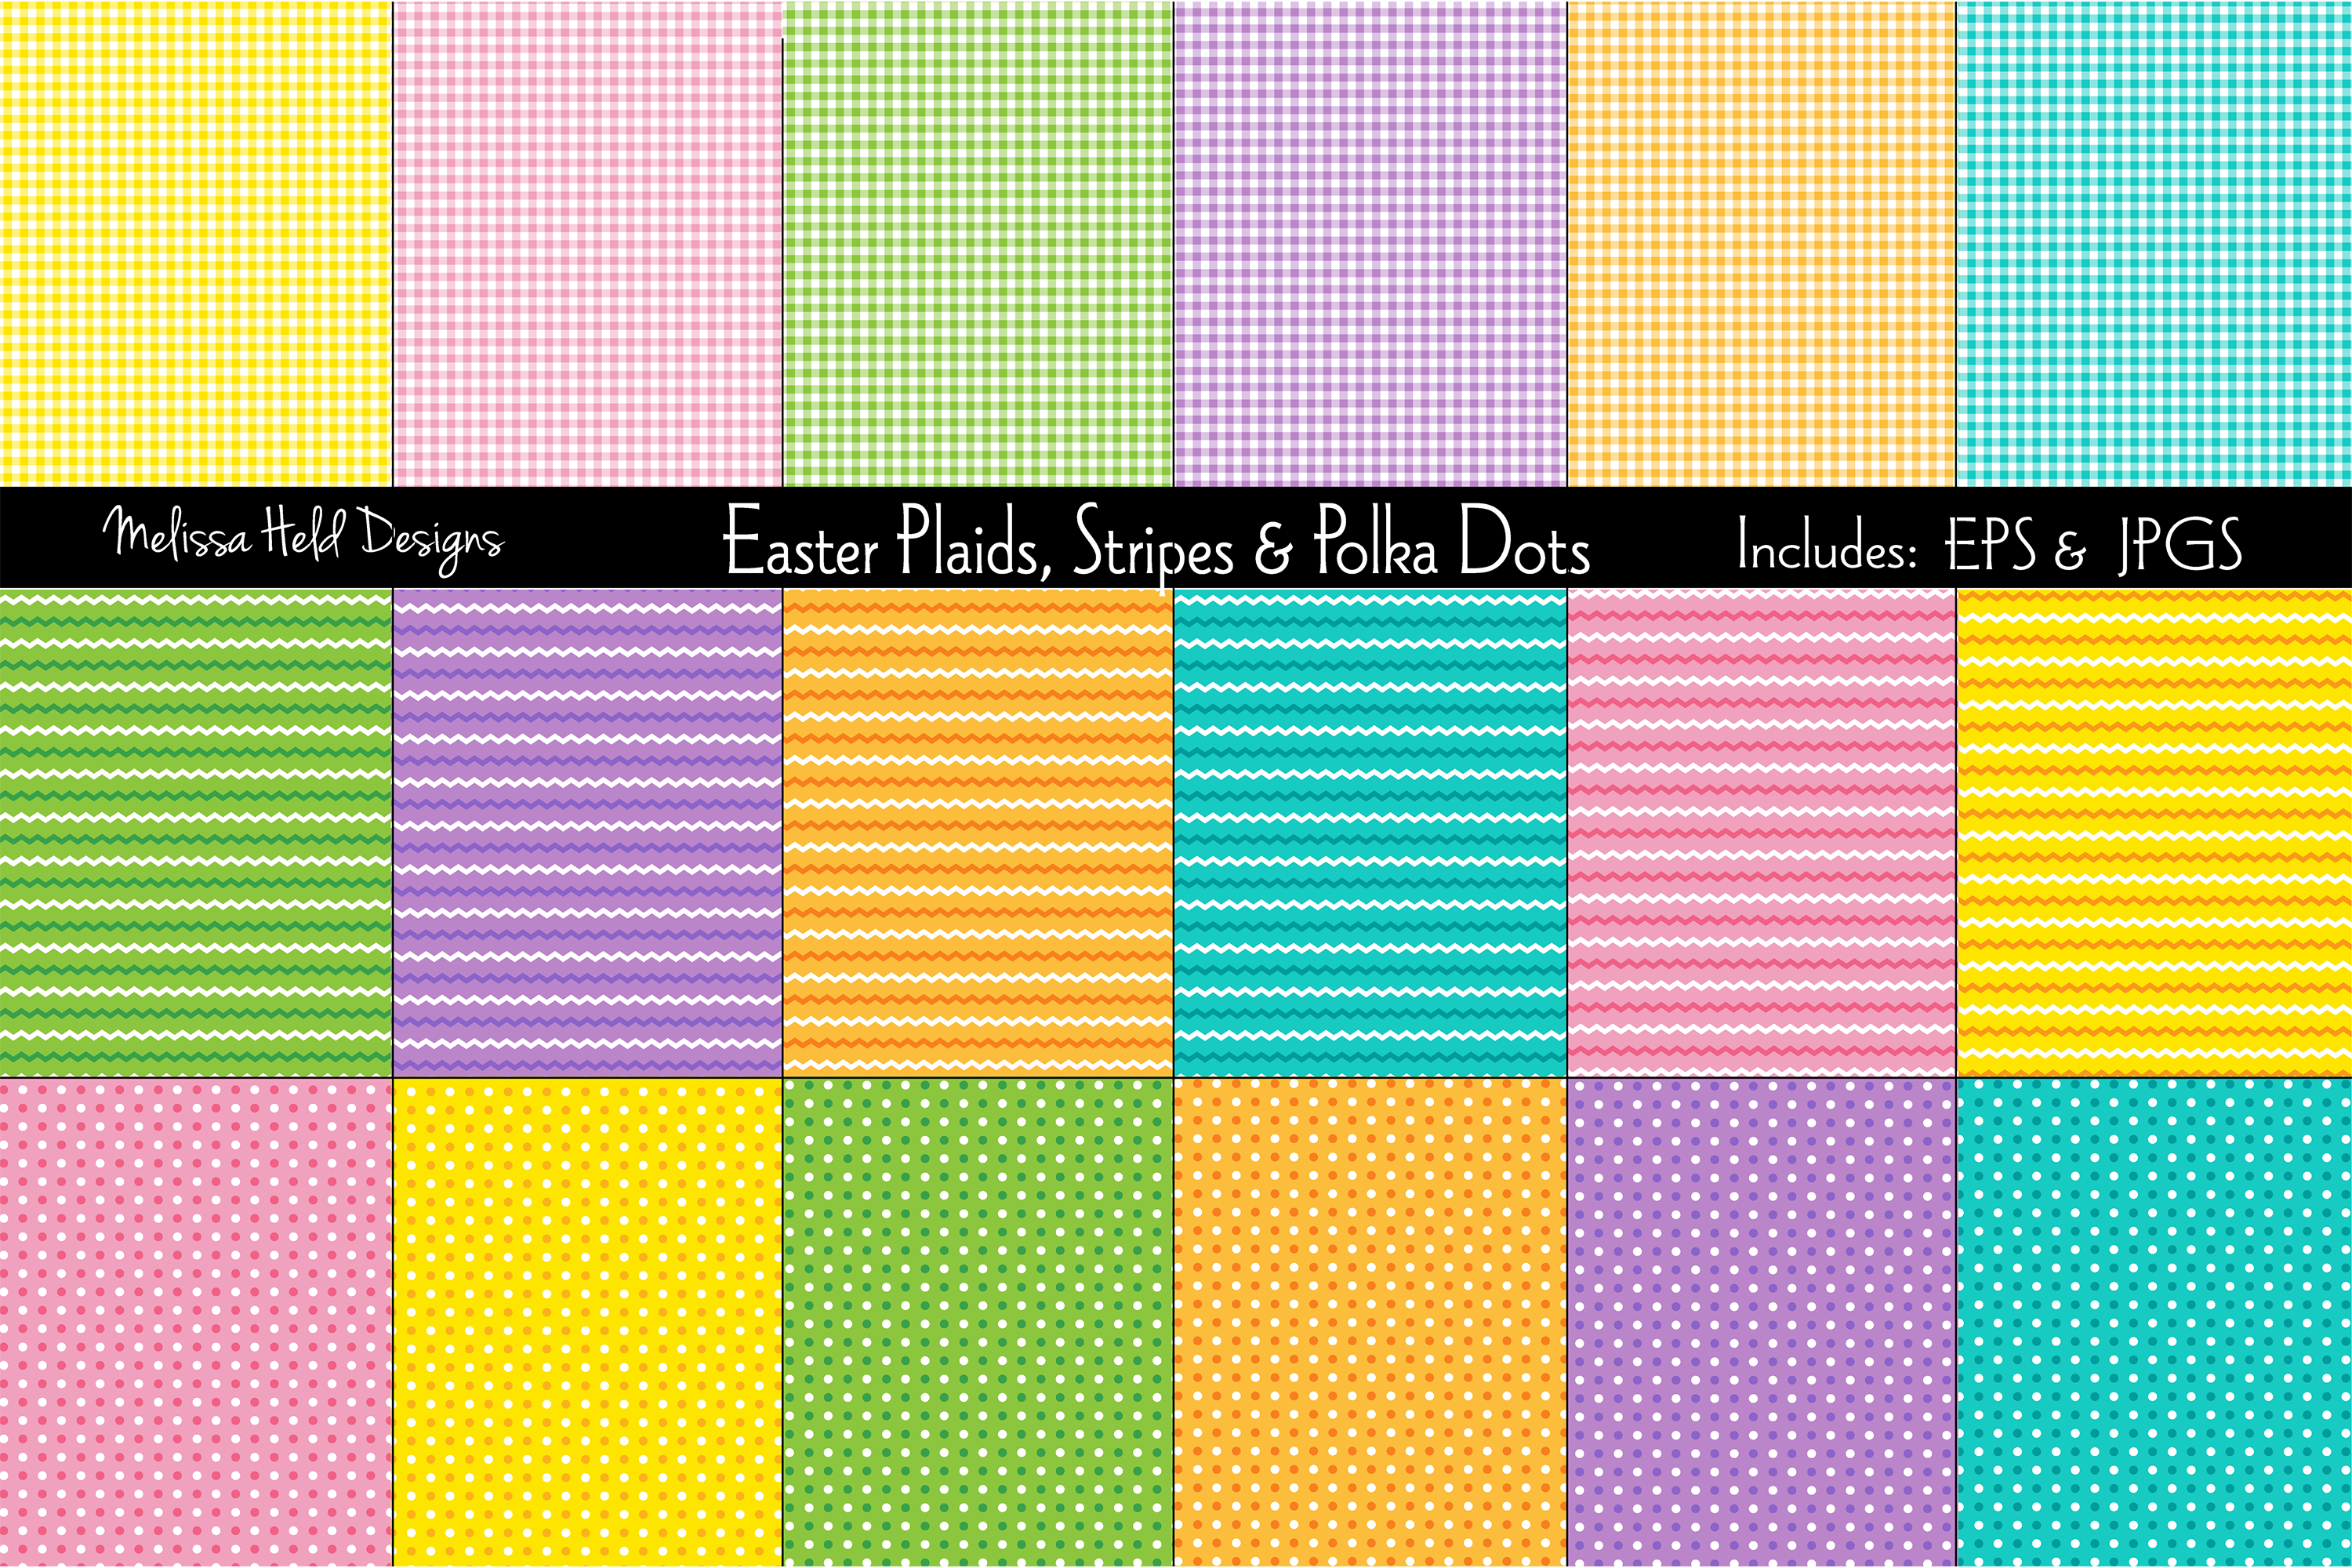 Easter Plaids, Stripes & Polka Dots example image 1